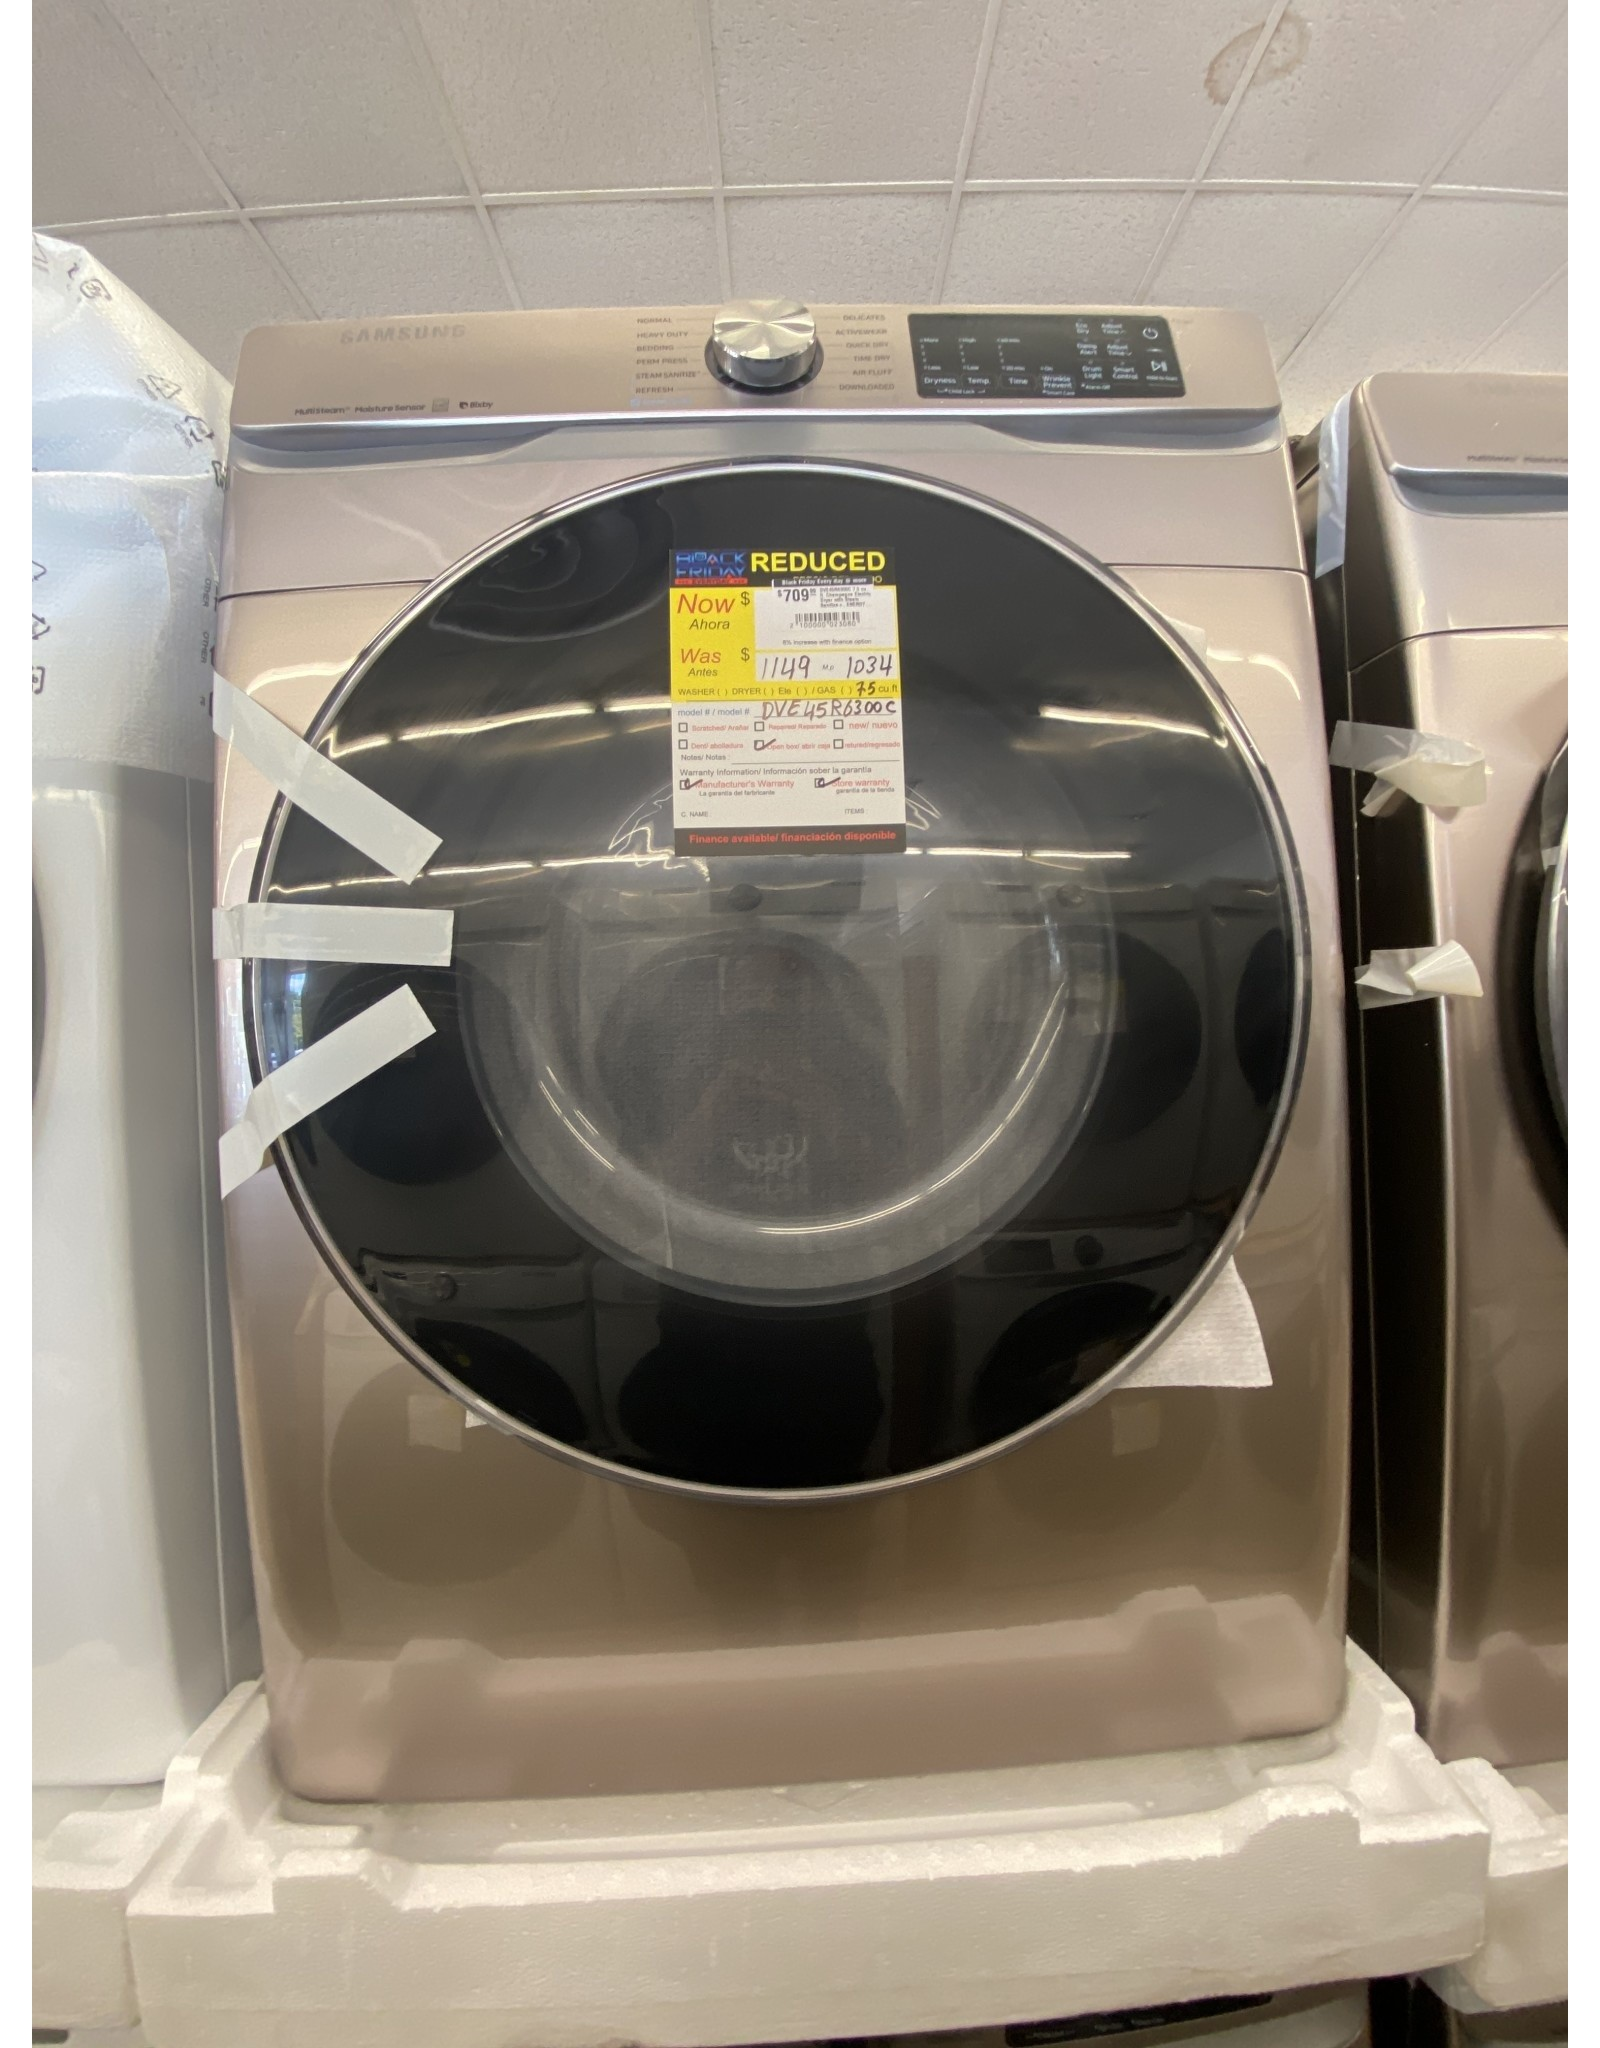 SAMSUNG DVE45R6300C 7.5 cu. ft. Champagne Electric Dryer with Steam Sanitize+, ENERGY STAR